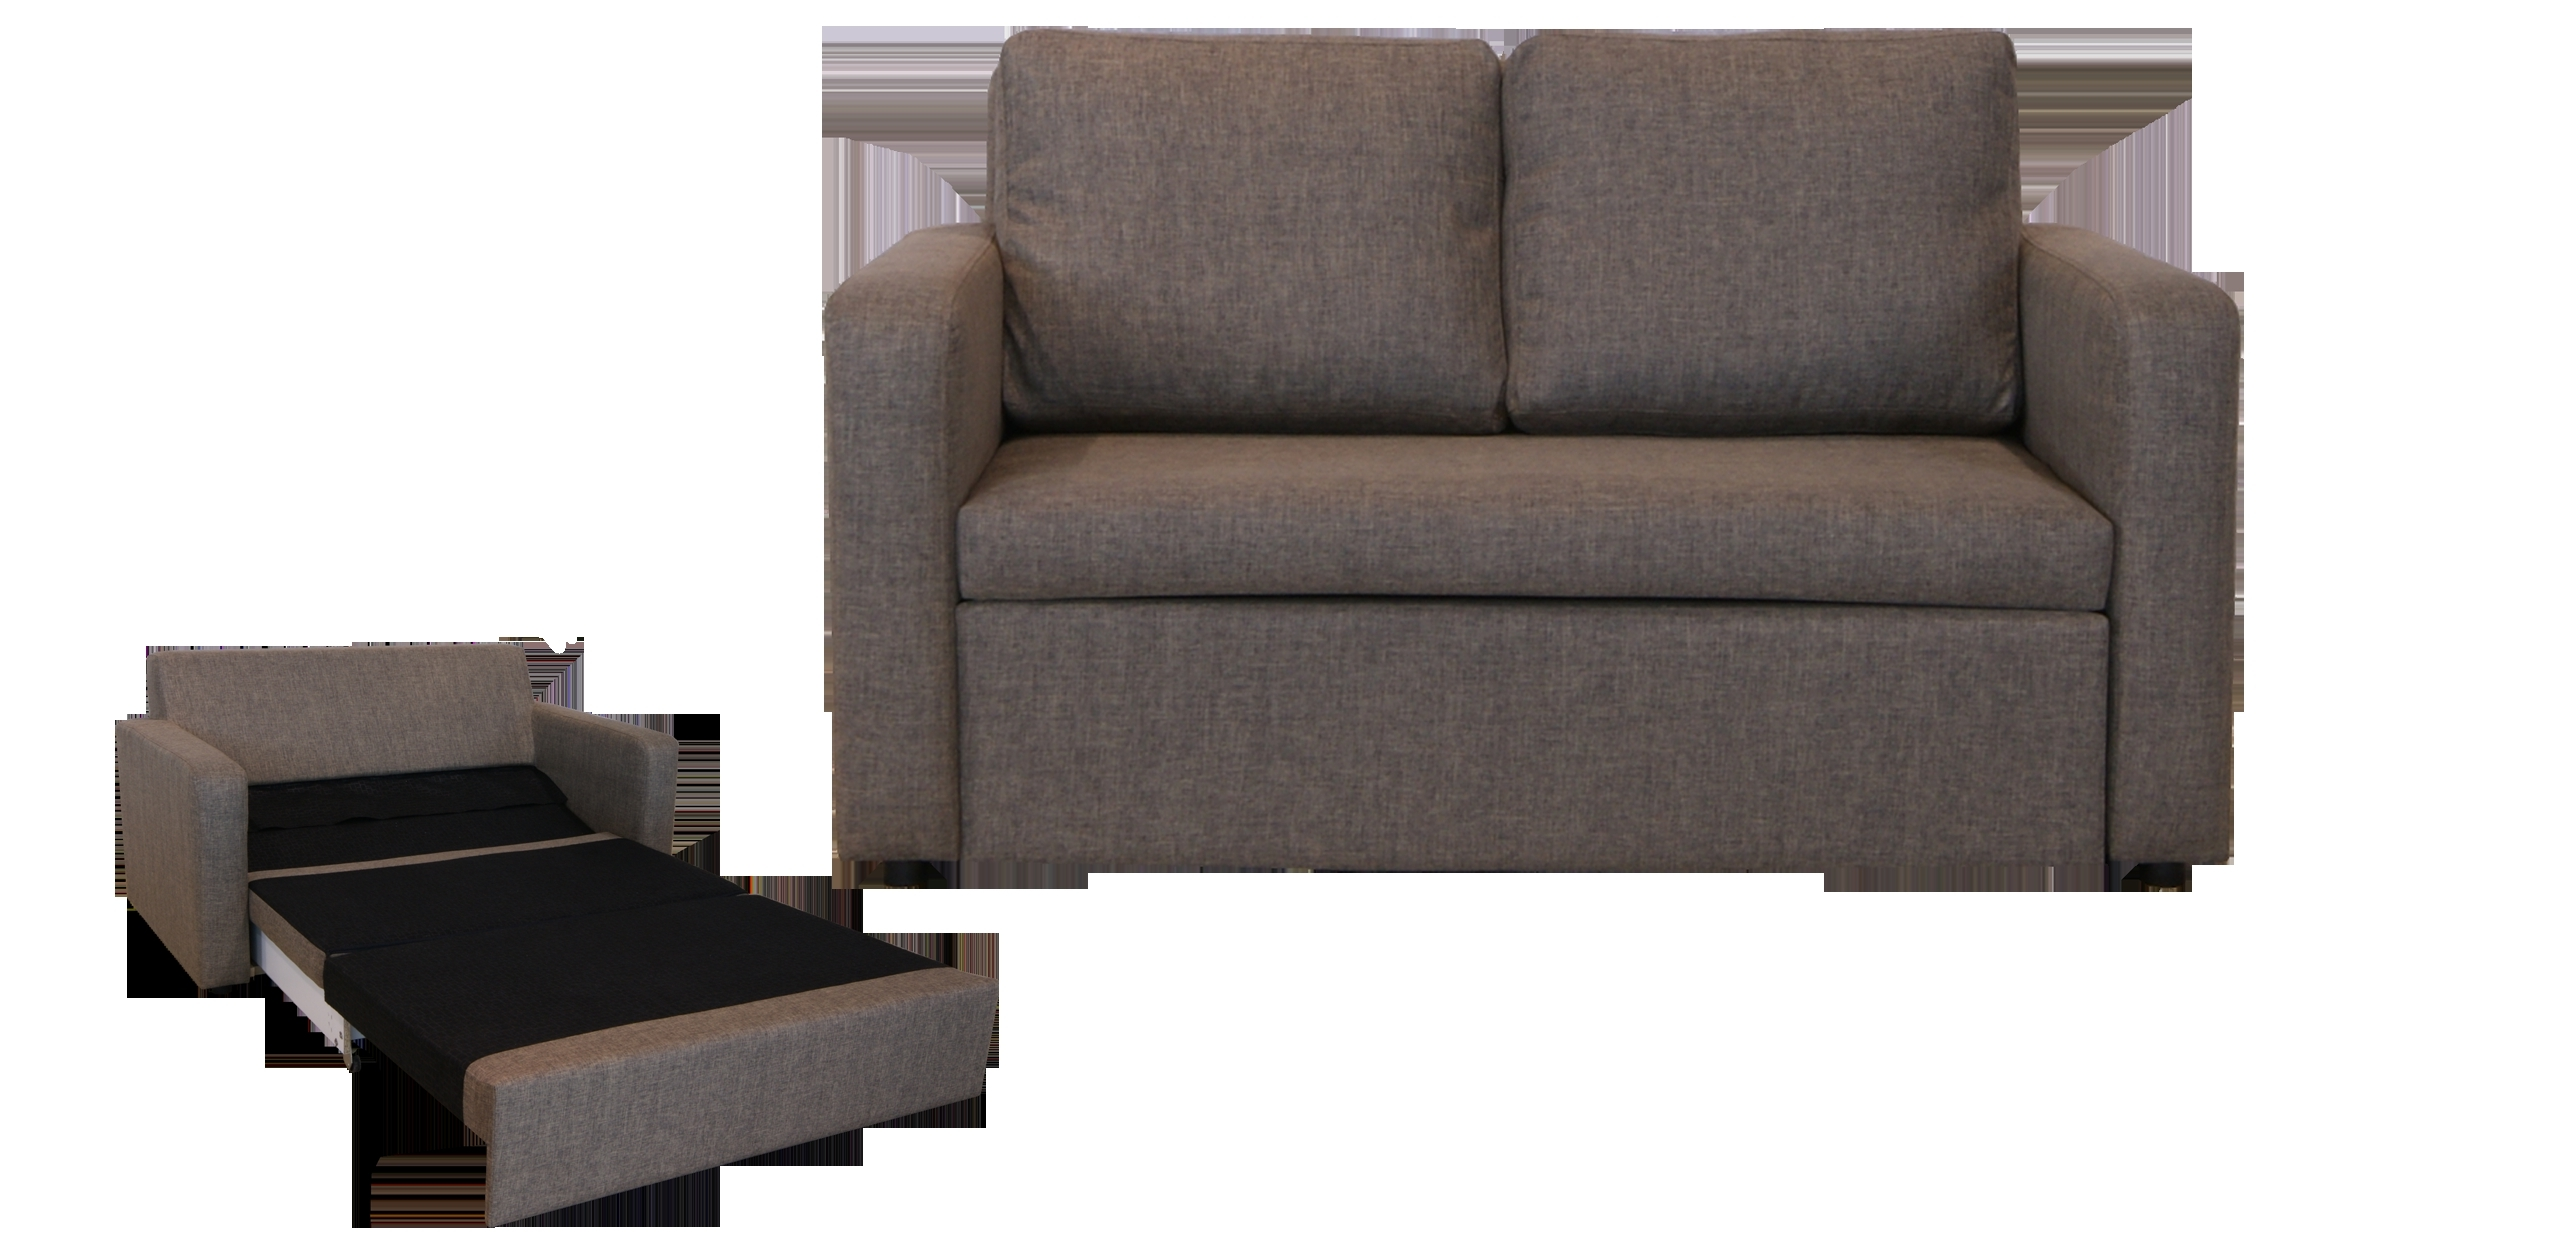 Small 2 Seater Sofas In Trendy Small 2 Seater Bedroom Sofa • Sofa Bed (View 14 of 20)